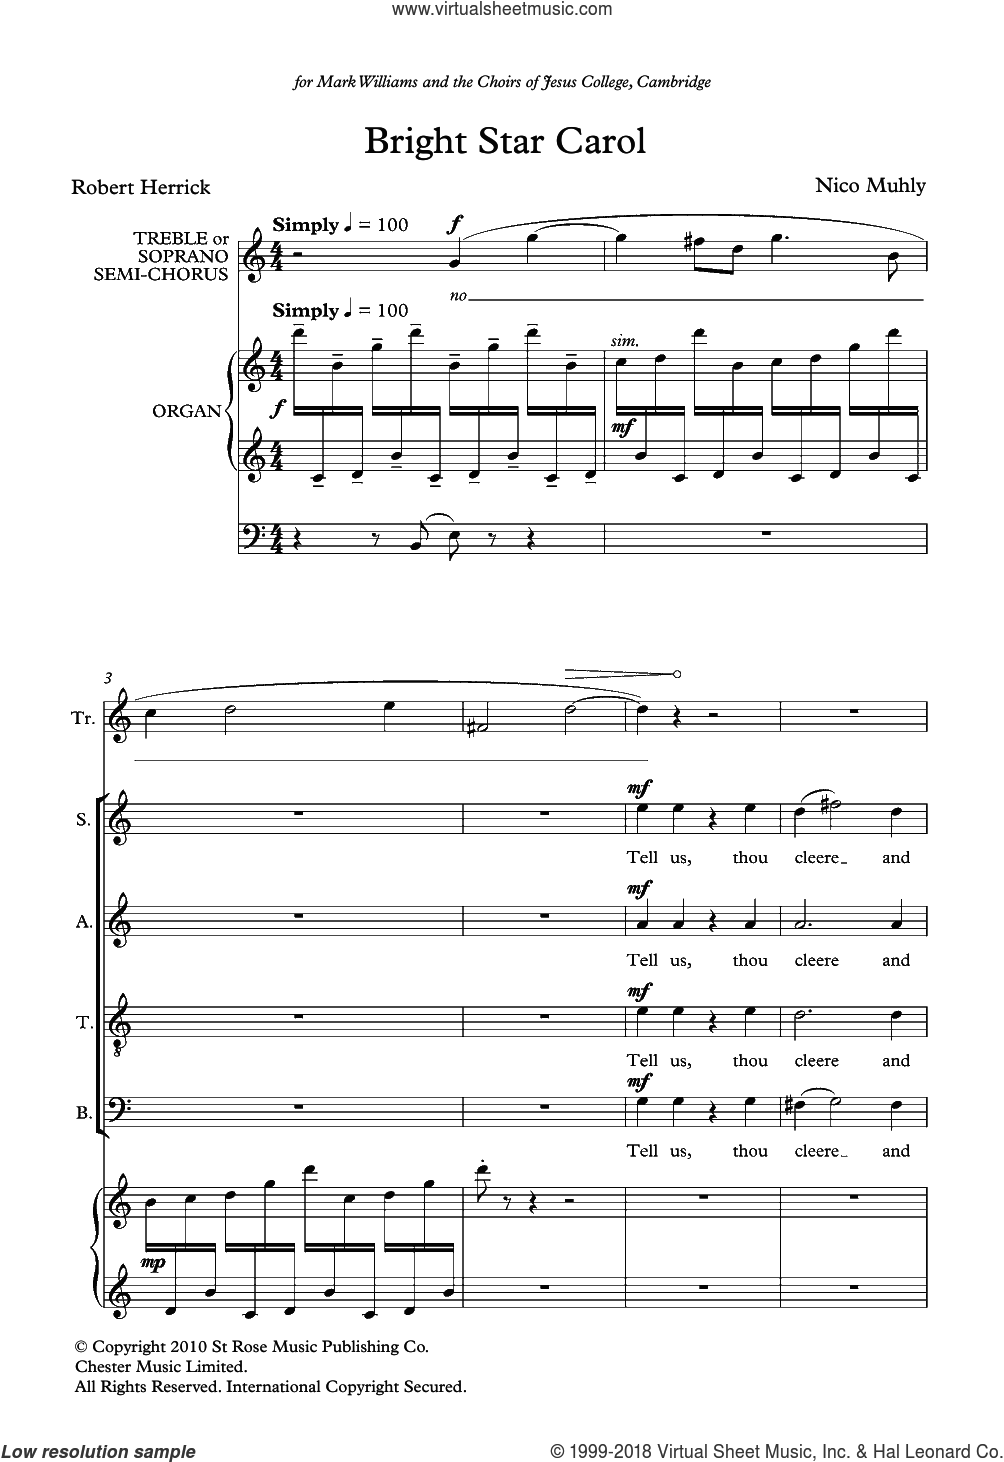 Bright Star Carol sheet music for choir by Nico Muhly. Score Image Preview.